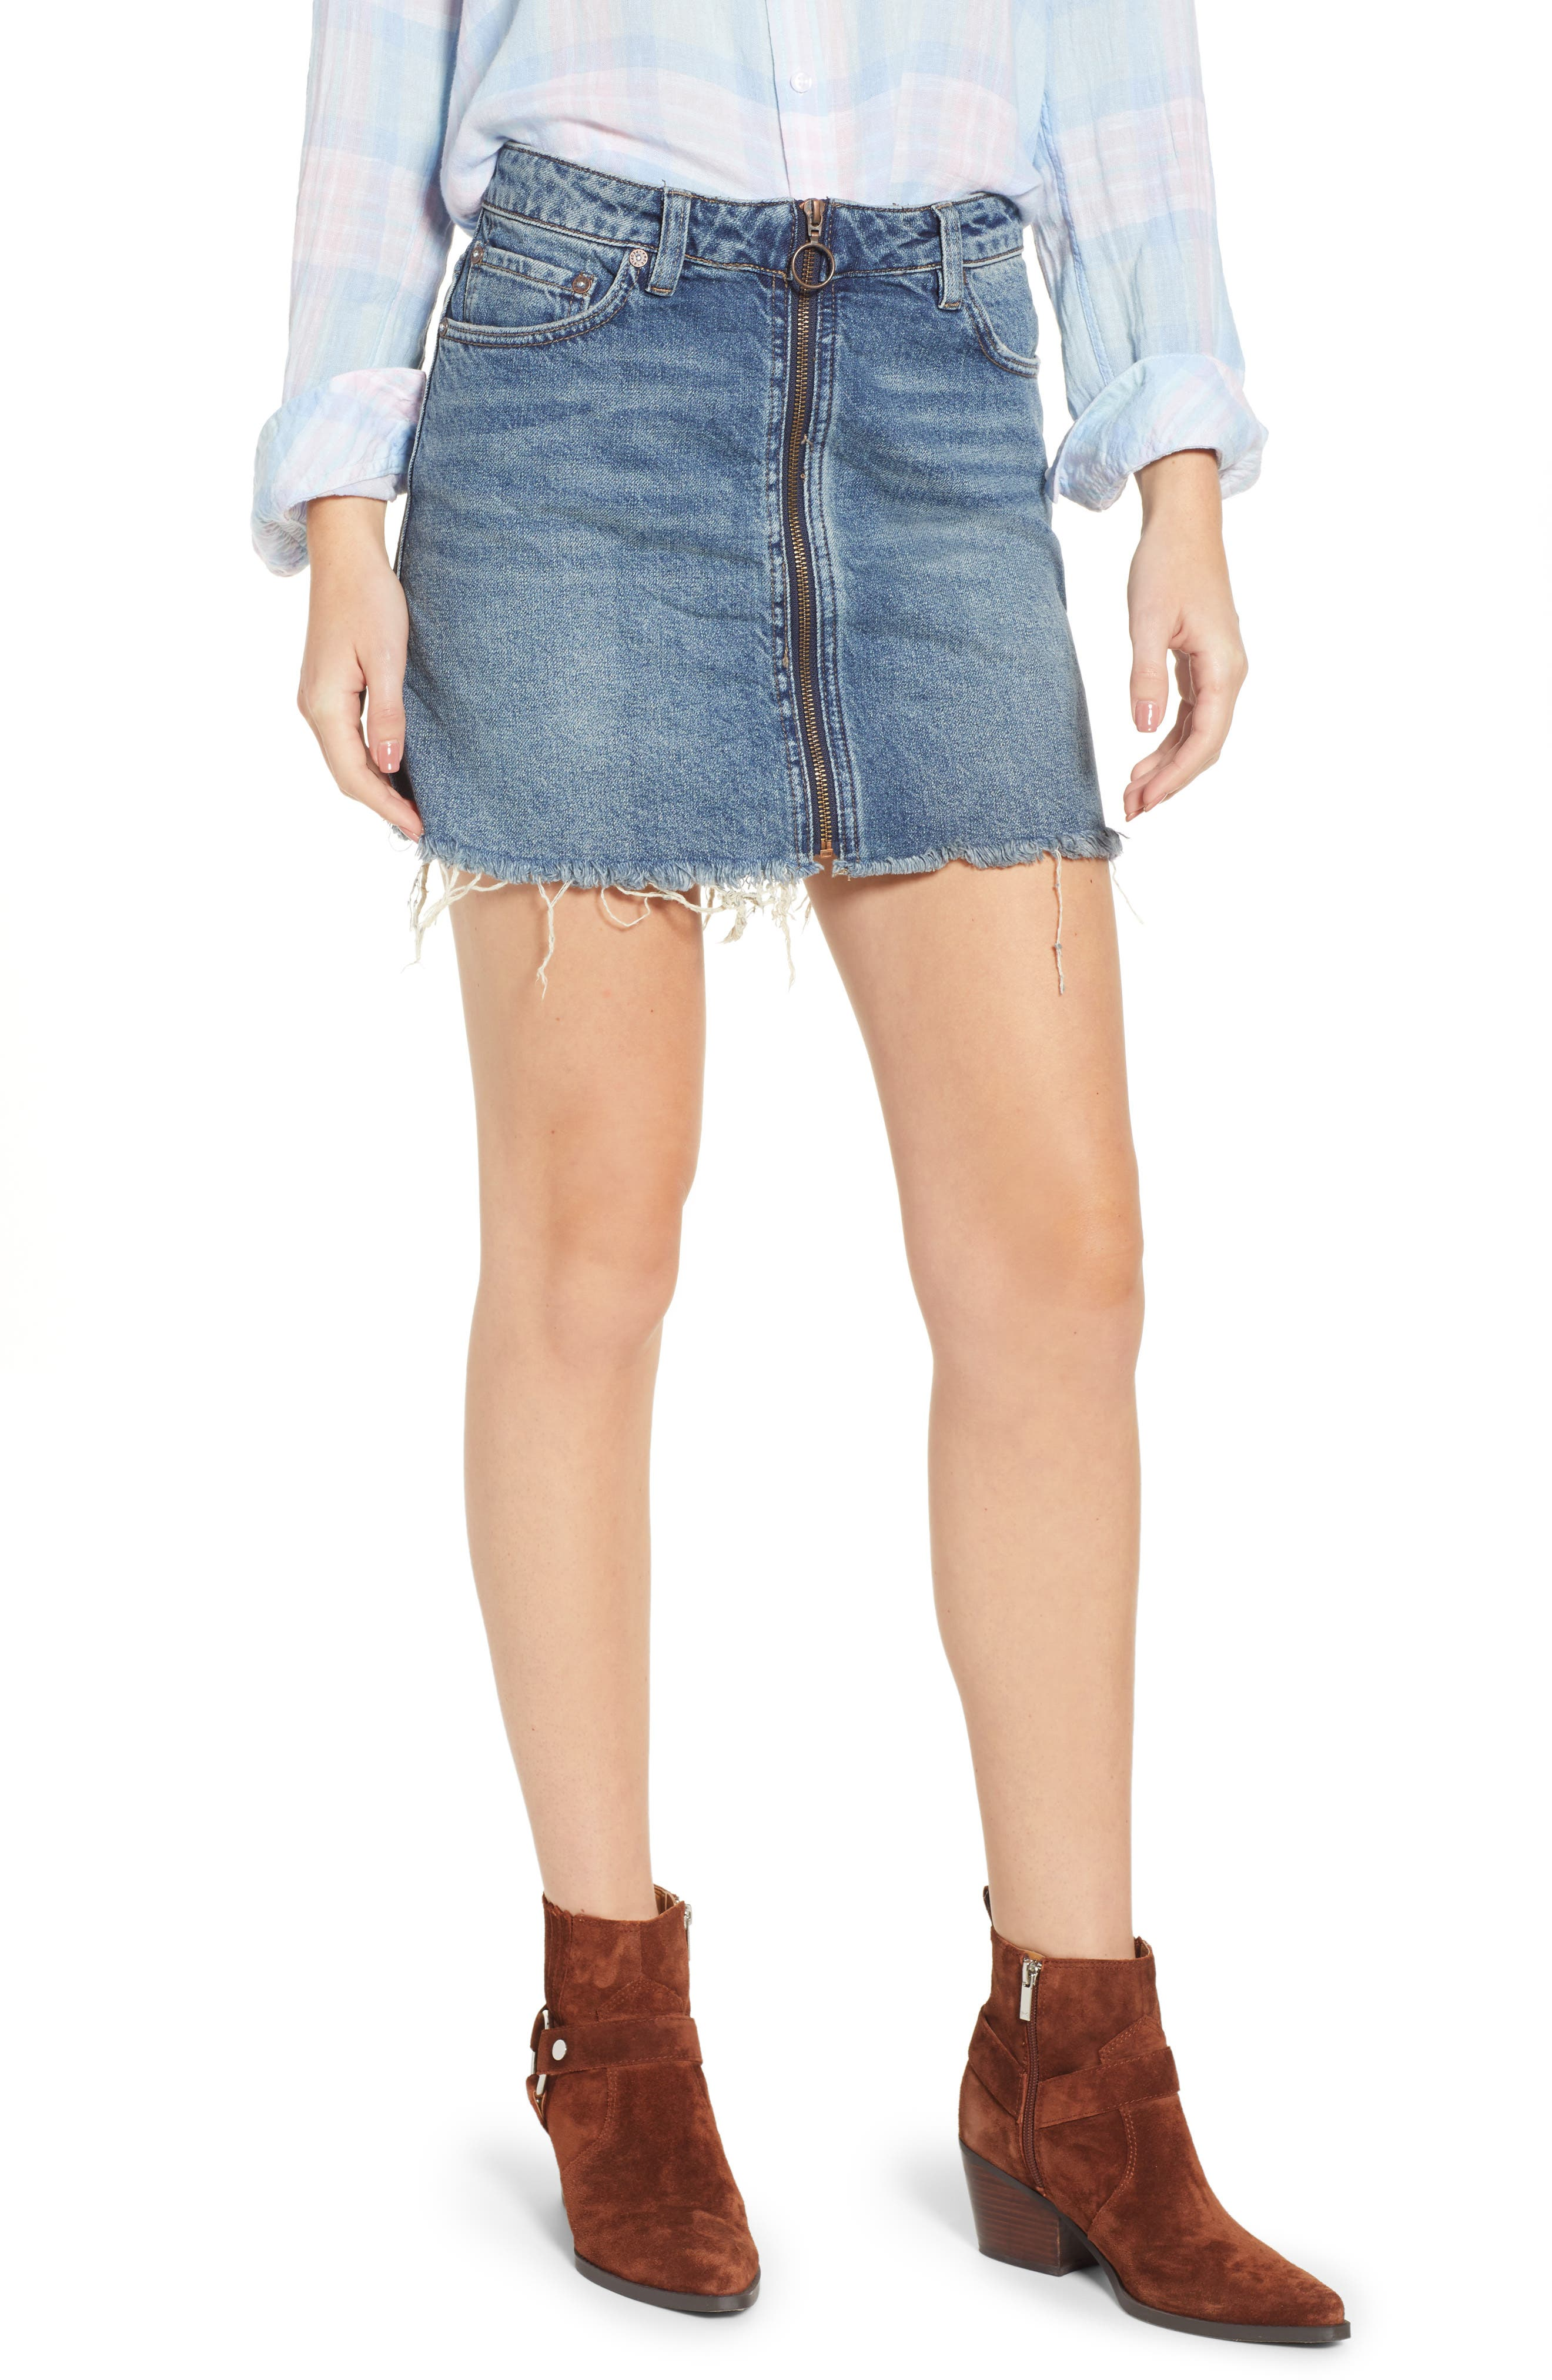 We The Free By Free People Zip It Up Denim Miniskirt, 7 - Blue